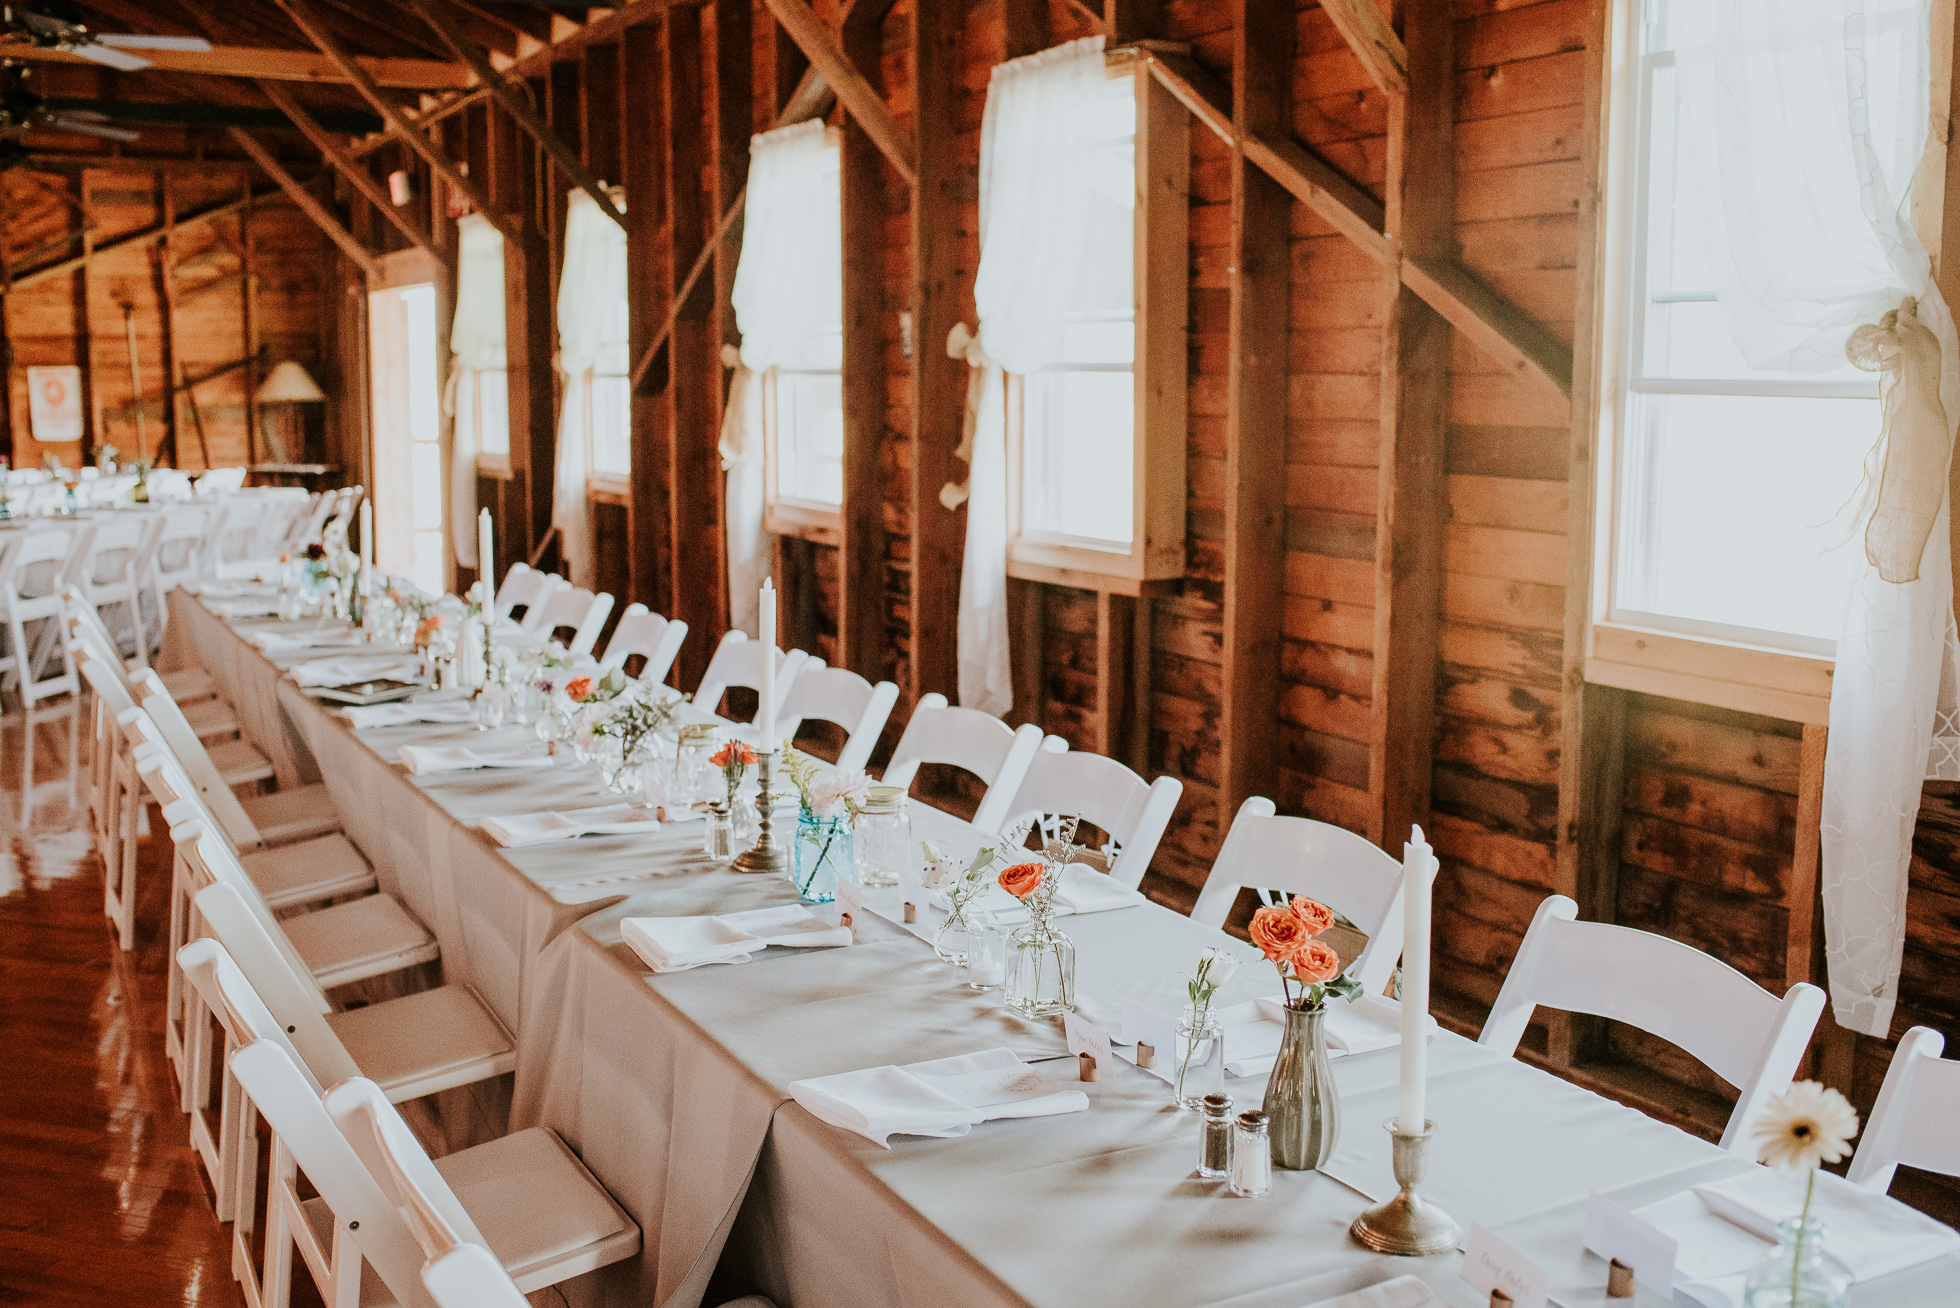 barn reception tables at olde tater barn wedding in central bridge, ny photographed by traverse the tides